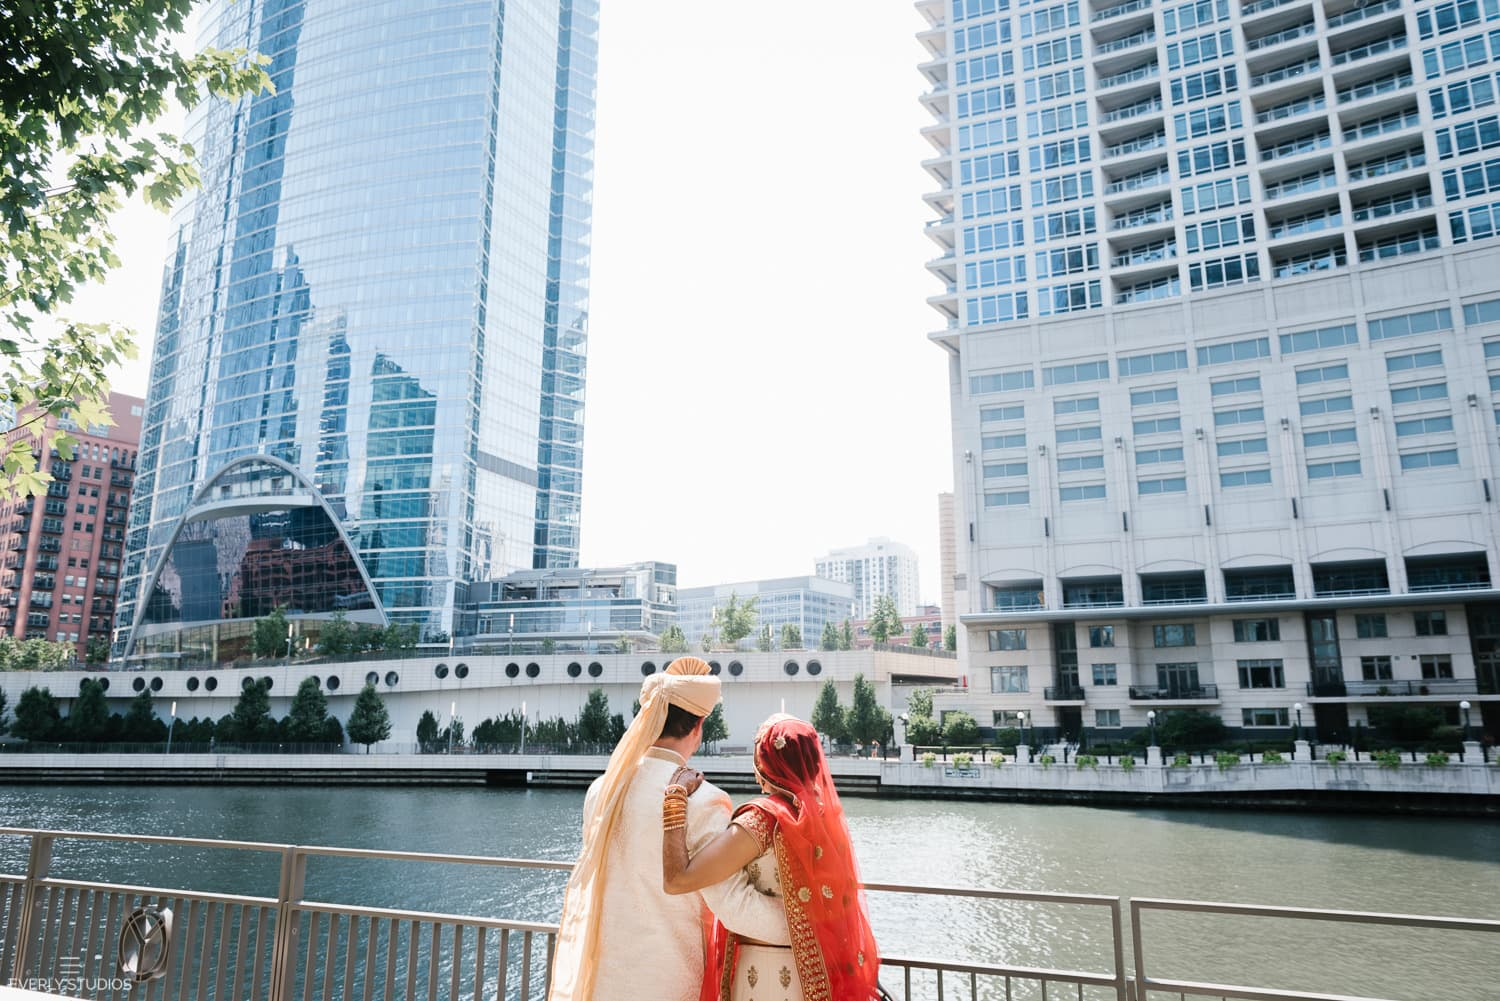 Wolf Point Ballroom wedding Chicago. Indian wedding photography by New York wedding photographer Everly Studios, www.everlystudios.com